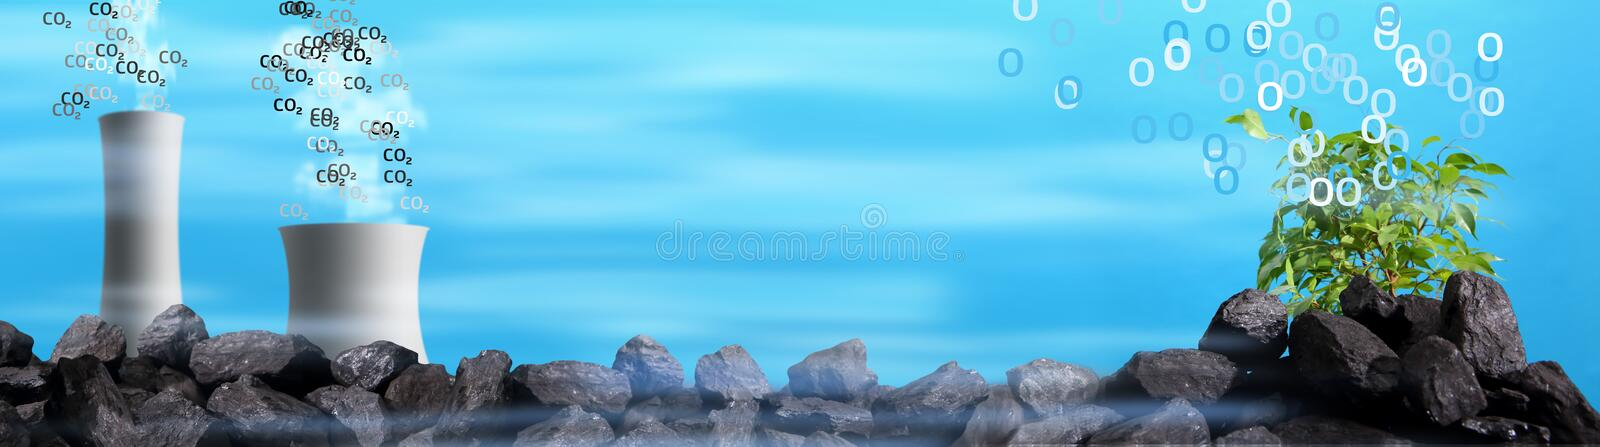 Just behind the coal heap, huge chimneys smoke and a small green tree grows in the corner. royalty free illustration